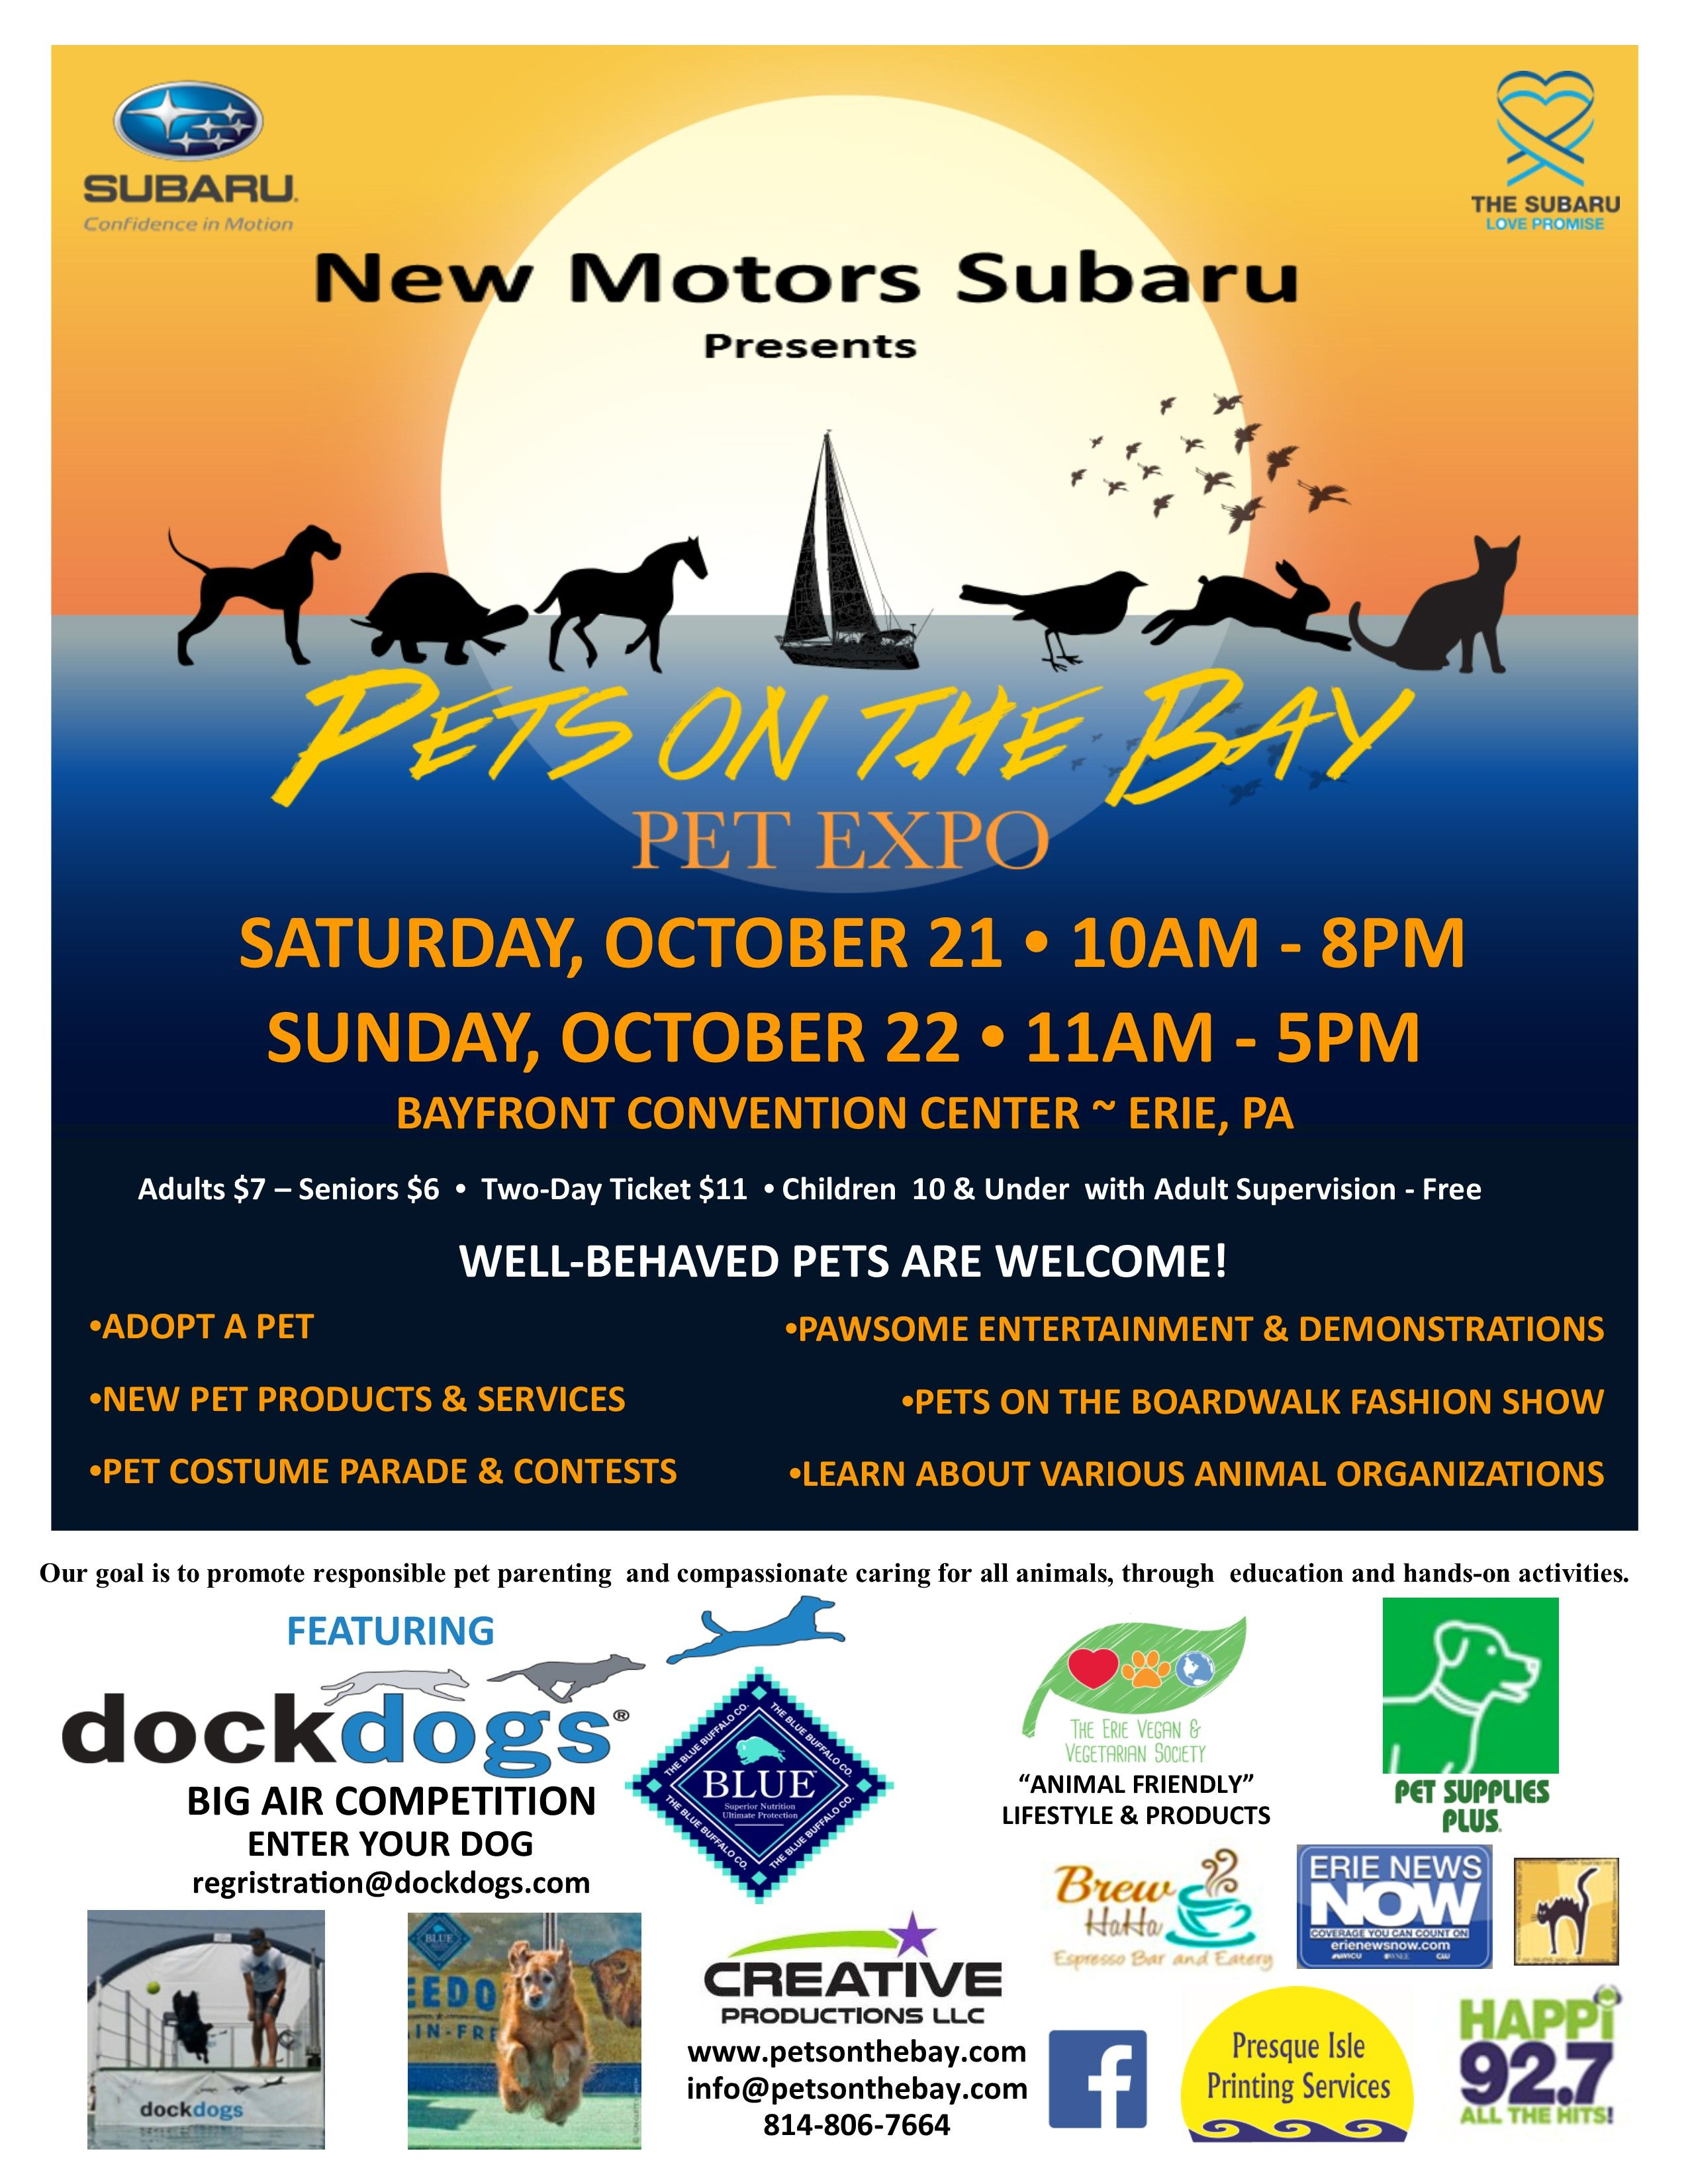 The New Motors Subaru Pets On The Bay Pet Expo 2017 Is Being Held